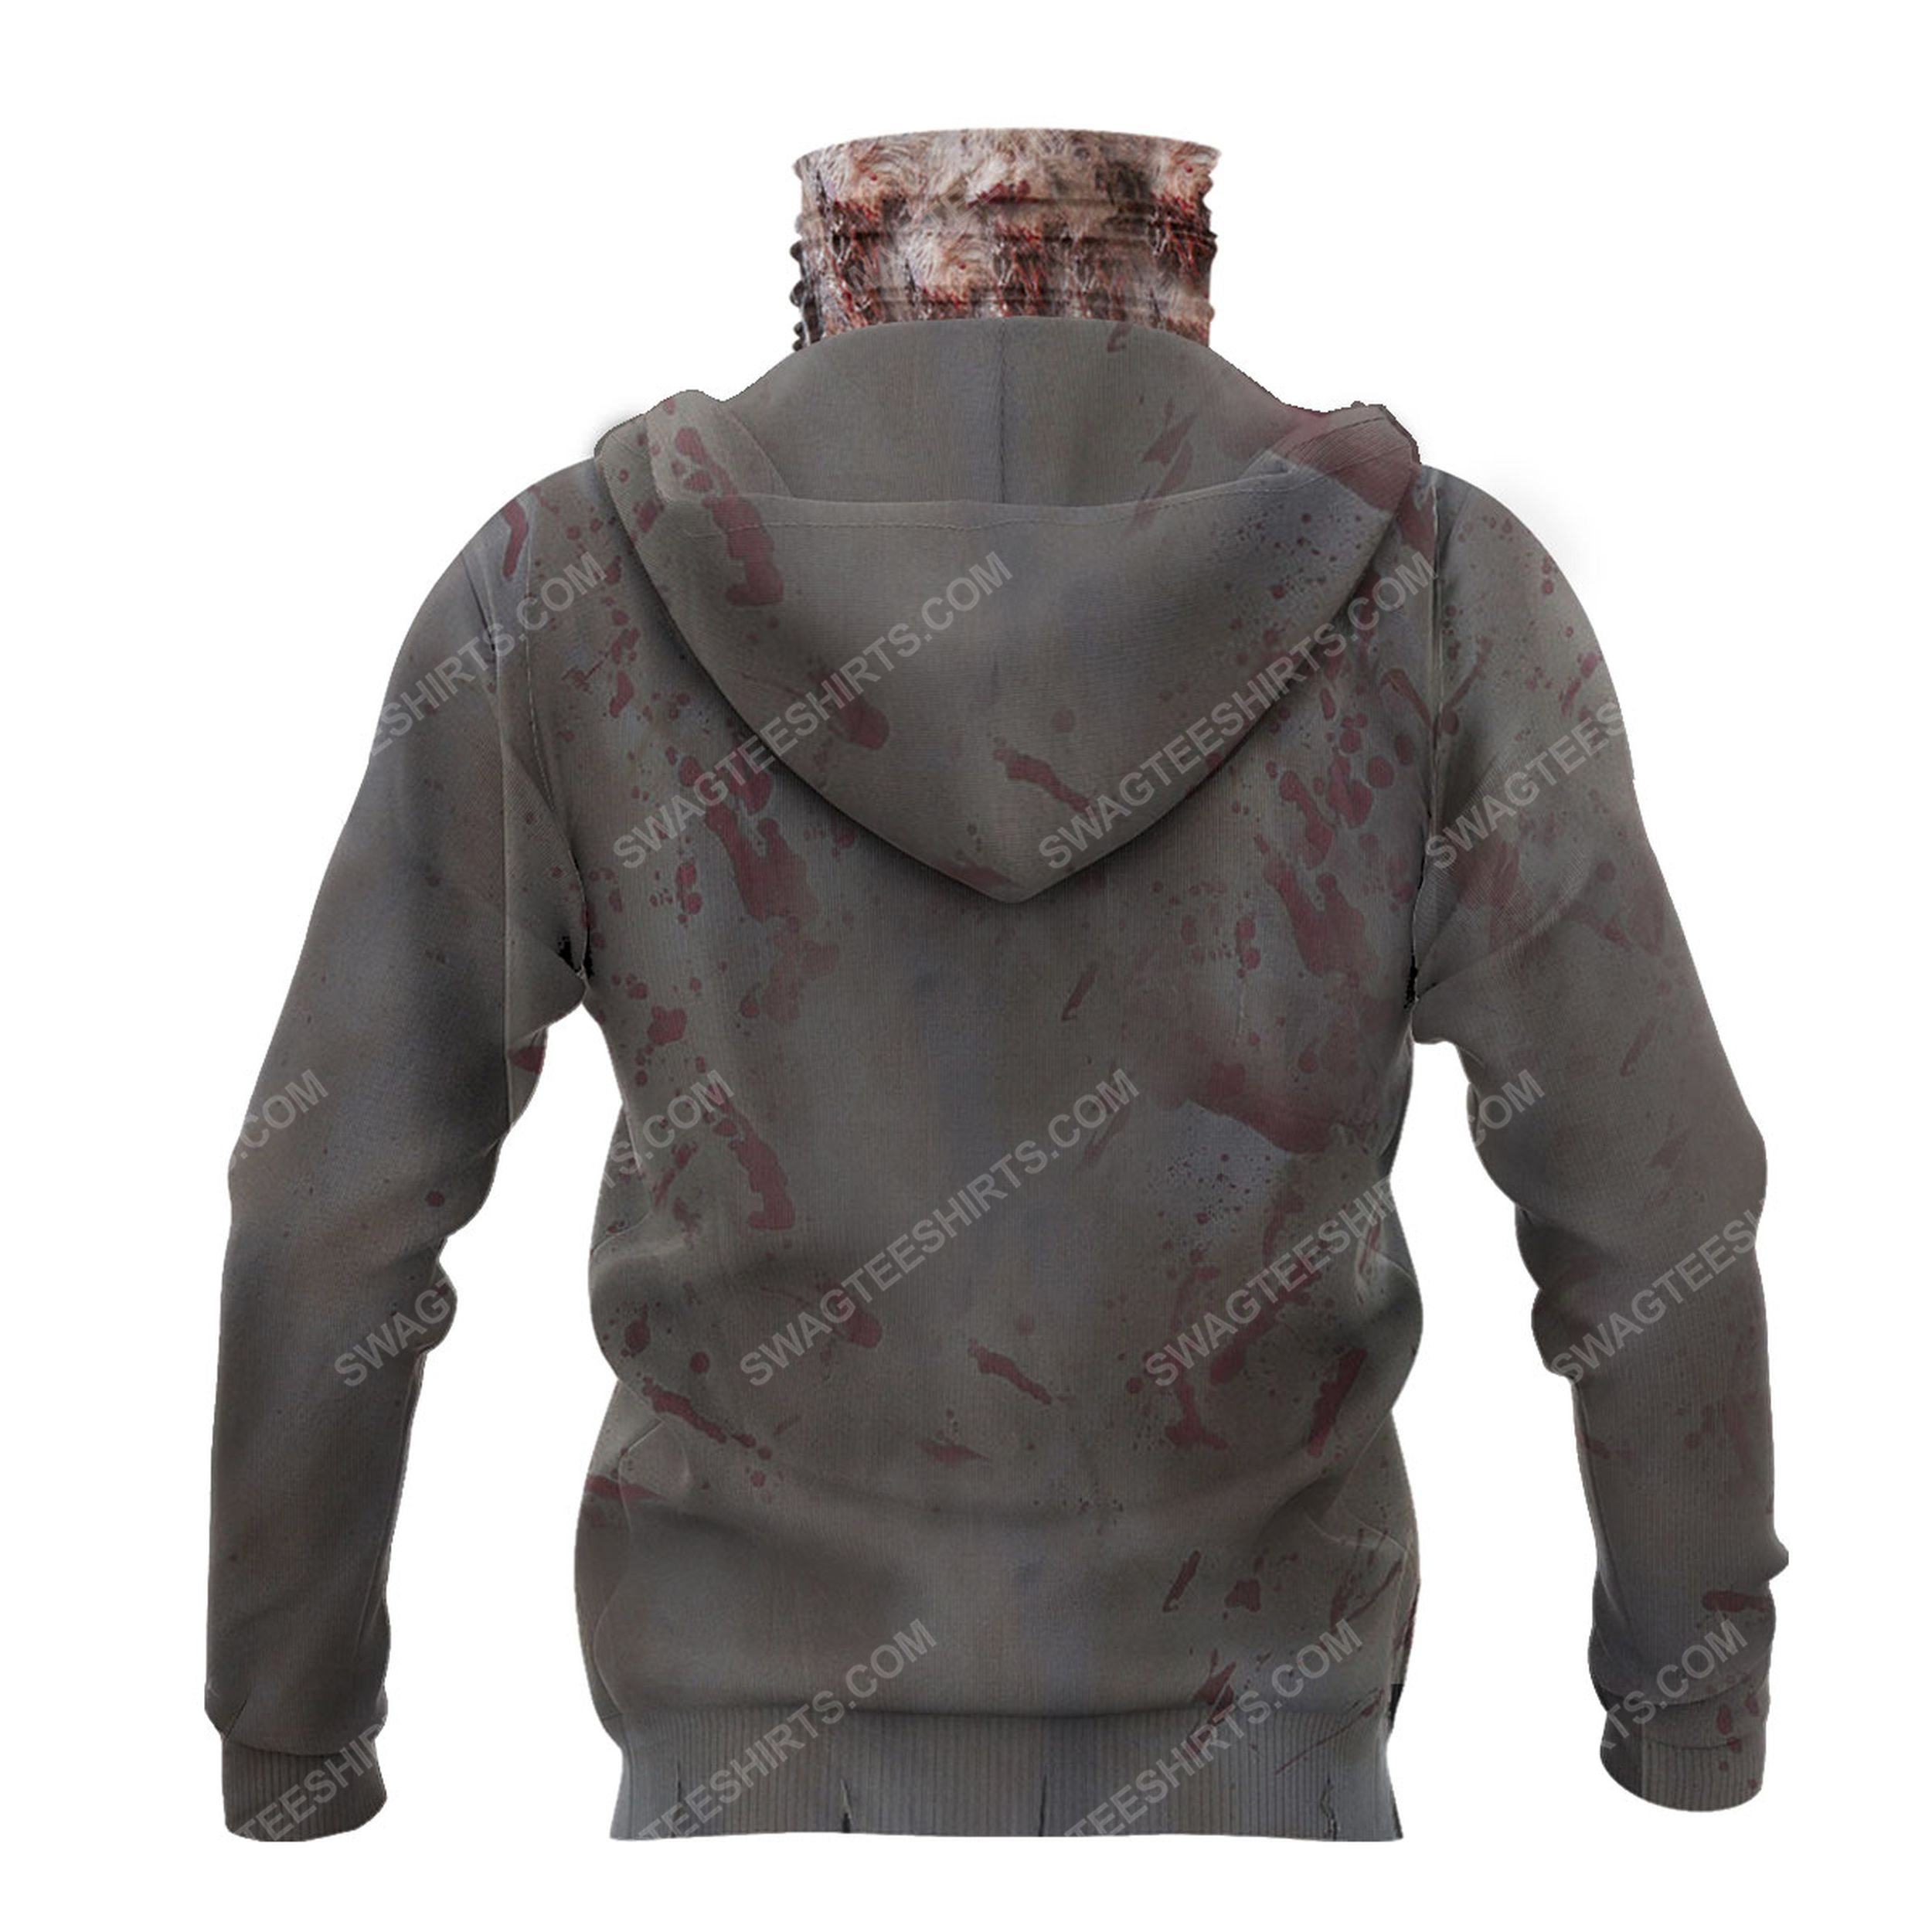 The zombie for halloween full print mask hoodie 3(1)